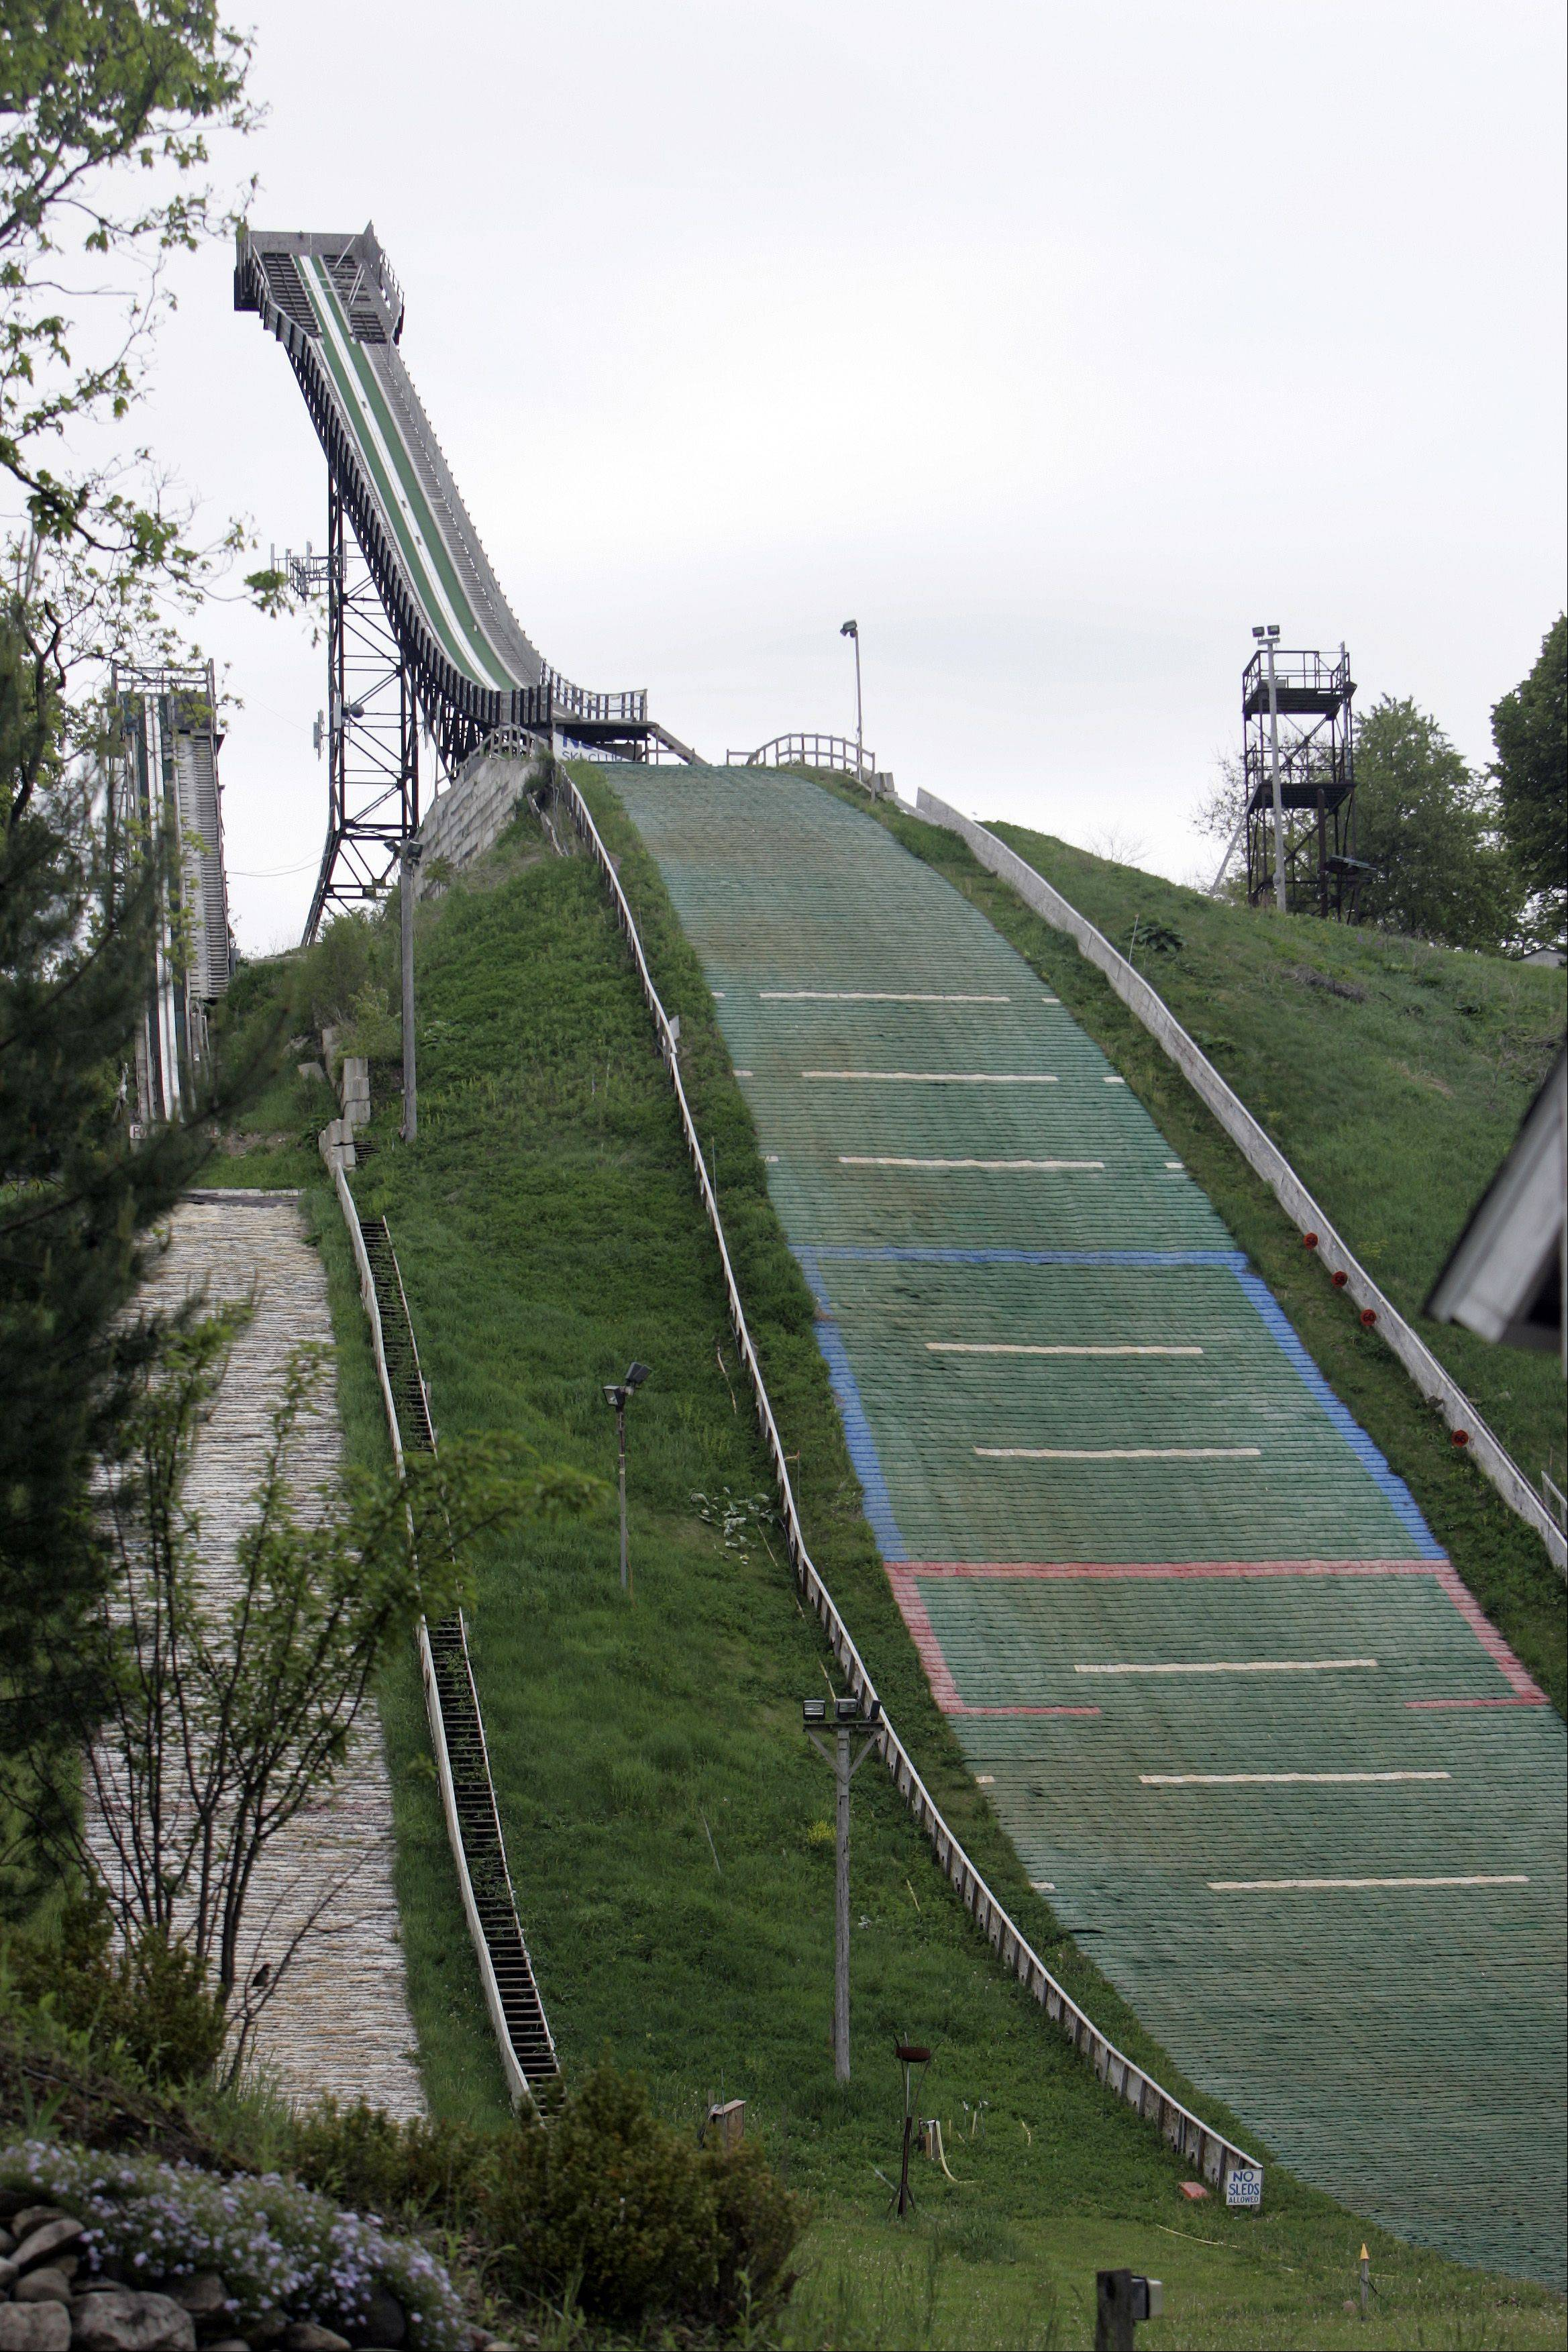 The hill at Norge Ski Club will be at 70 meters for the U.S. Championships.